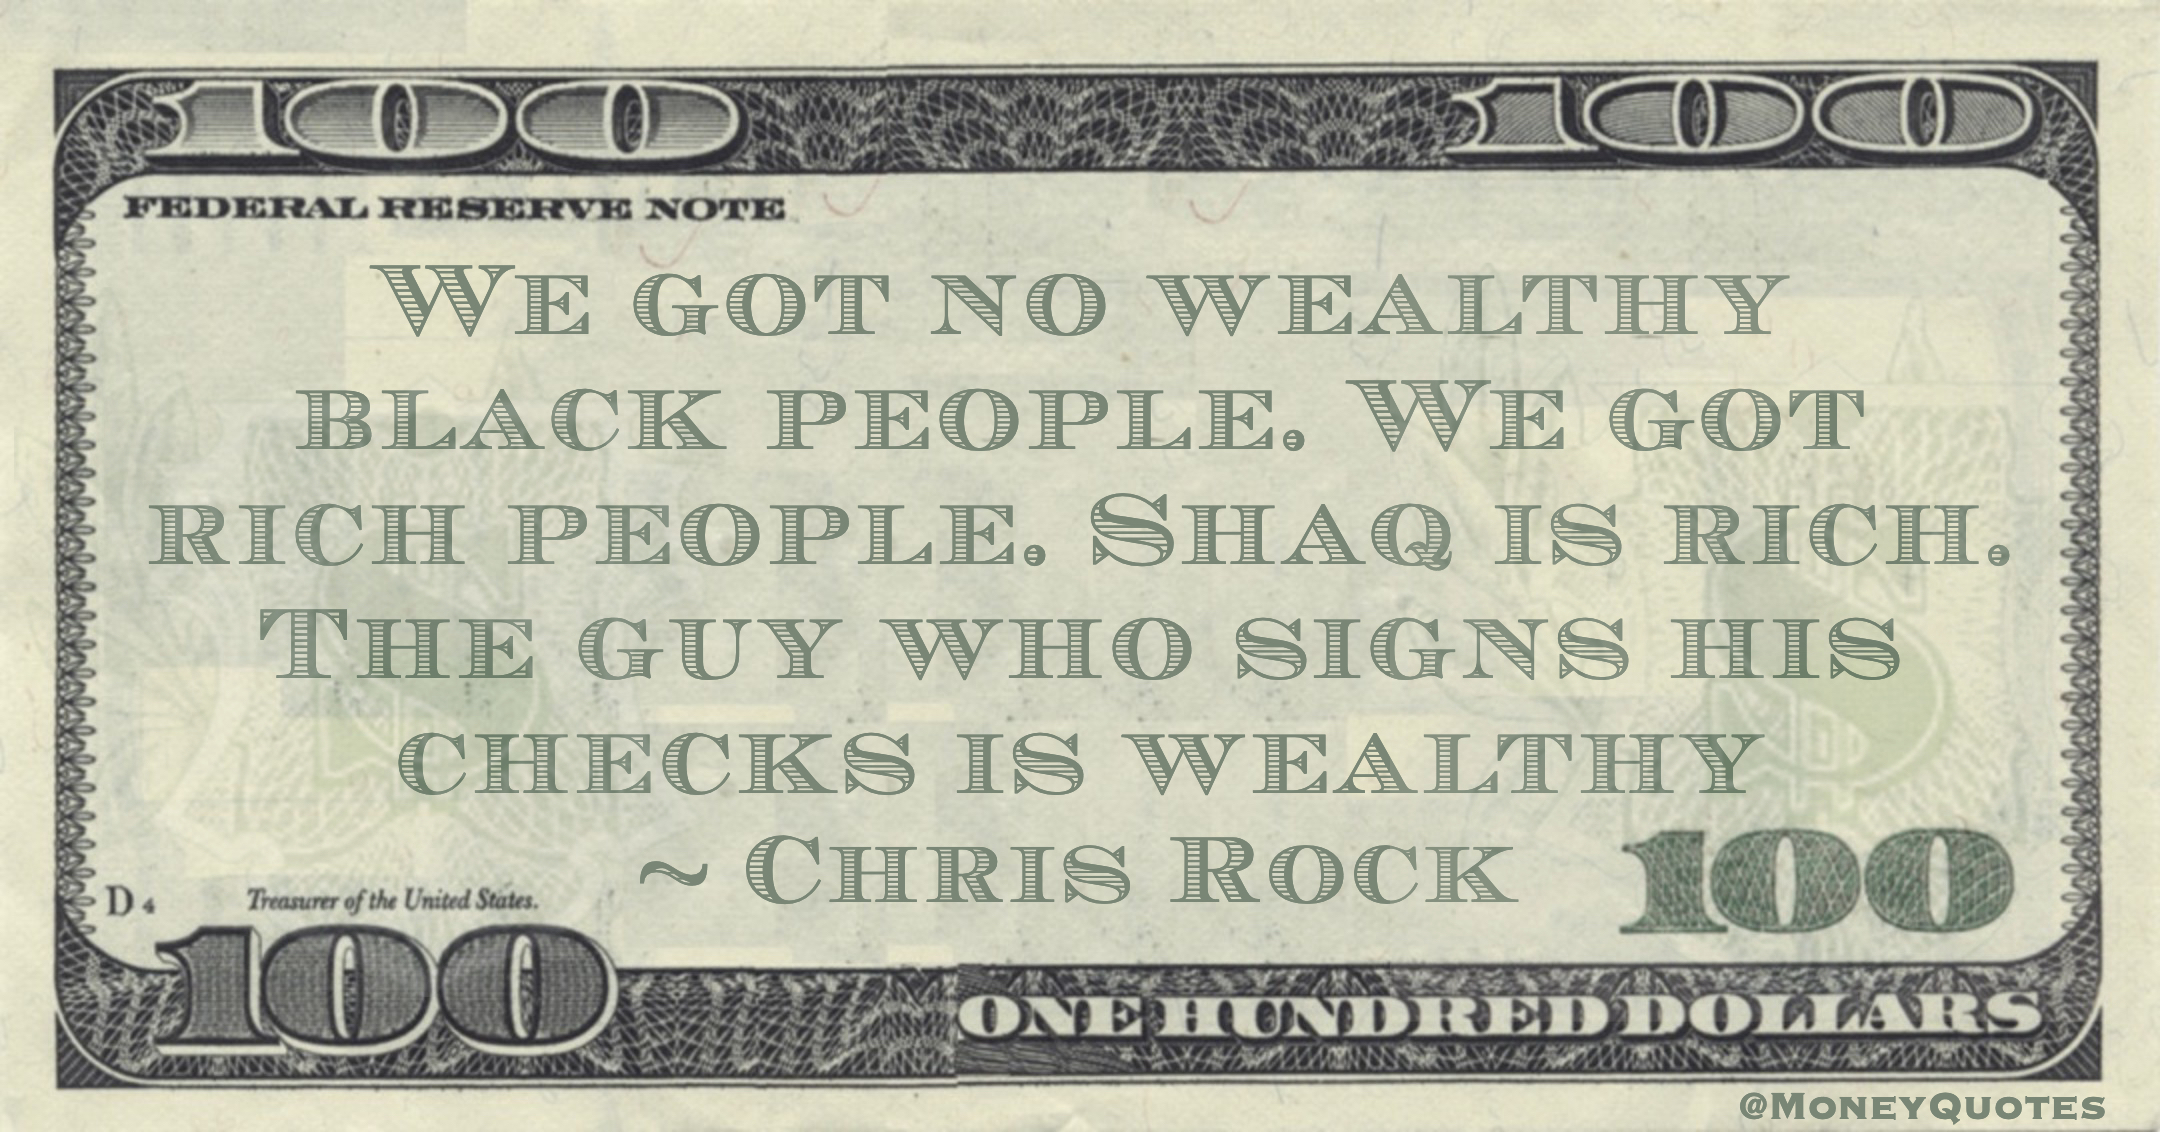 We got no wealthy black people. We got rich people. Shaq is rich. The guy who signs his checks is wealthy Quote